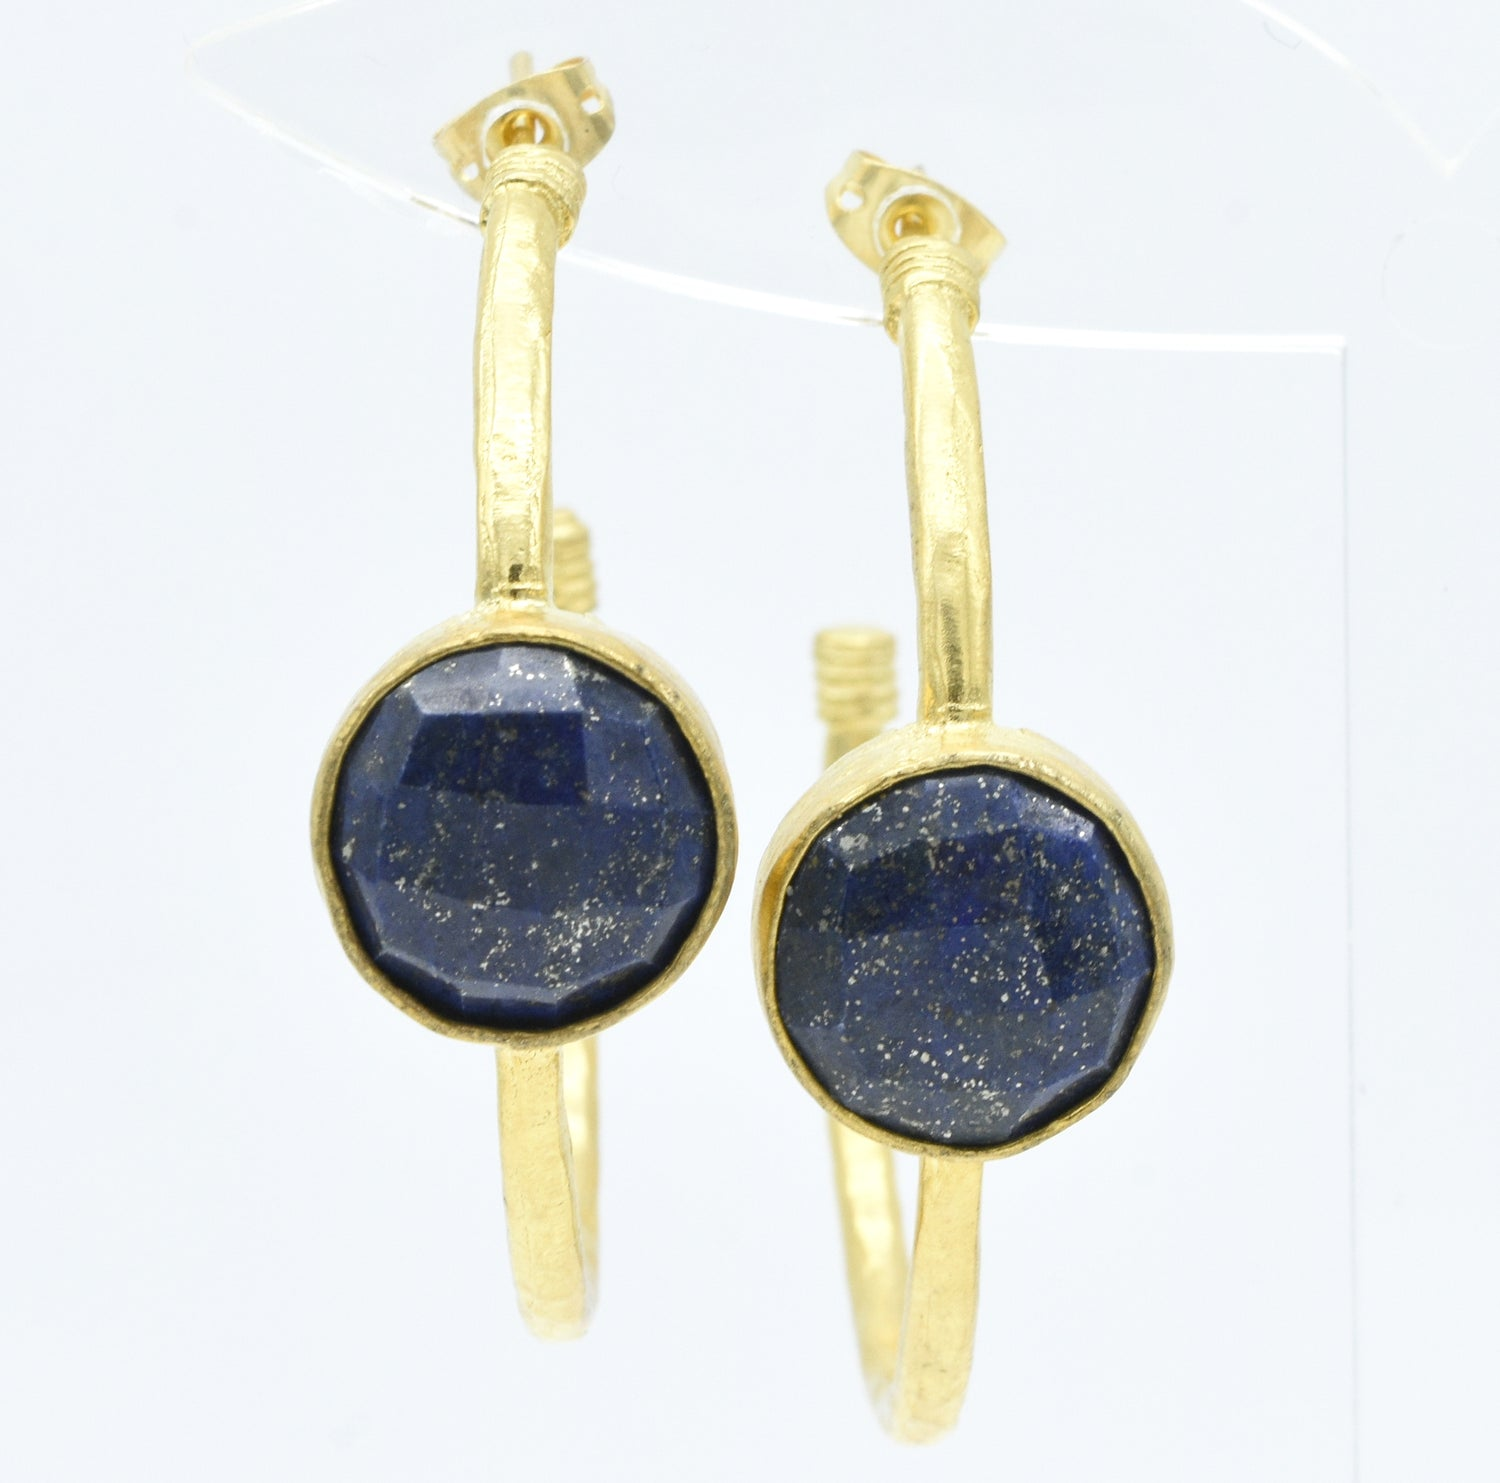 Aylas Lapis Lazuli earrings - 21ct Gold plated semi precious gemstone - Handmade in Ottoman Style by Artisan